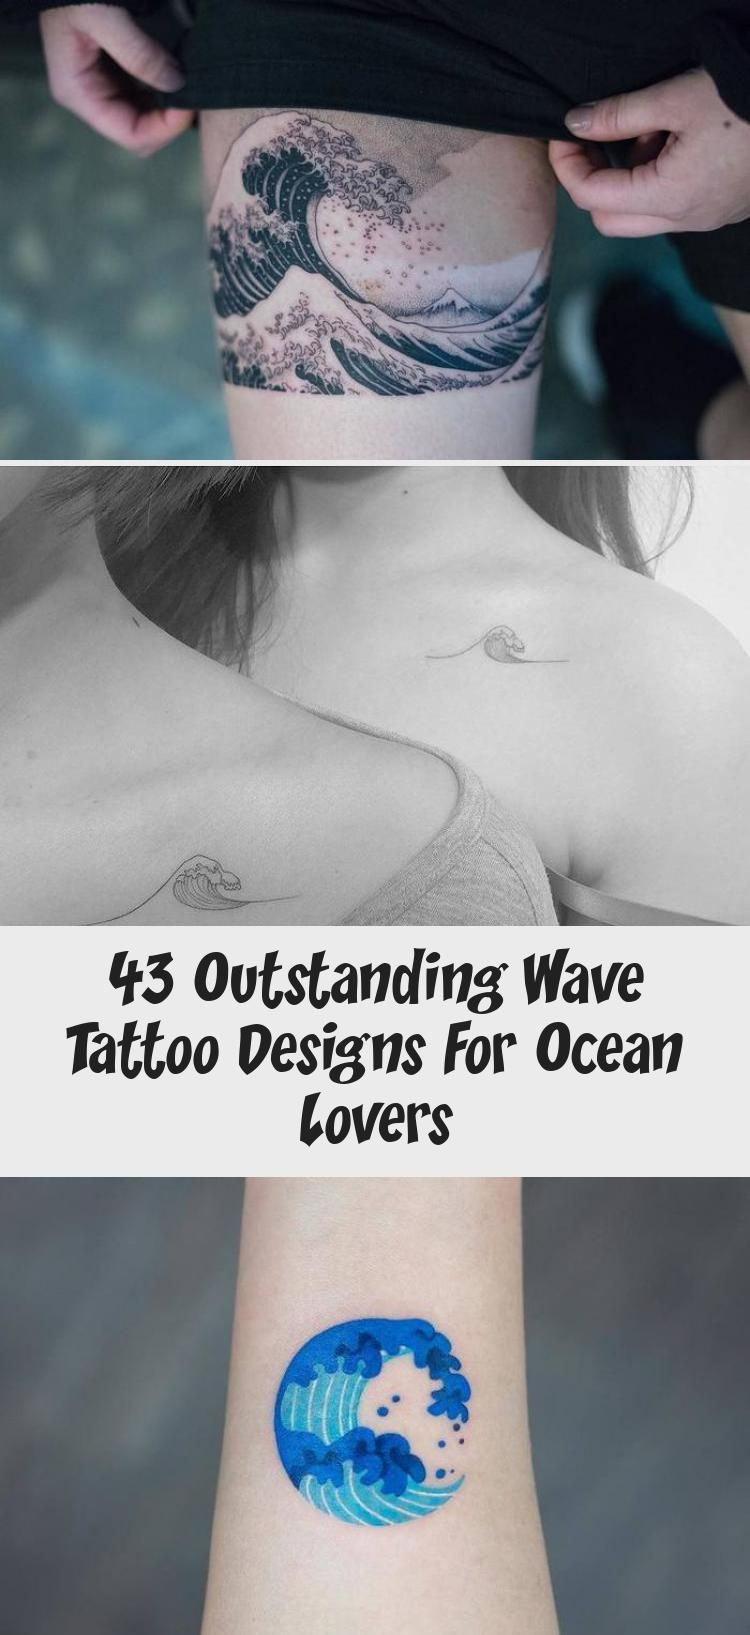 Photo of Top 50 Best Deathly Hallows Tattoos 2020 Inspiration Guide – My Tattoos